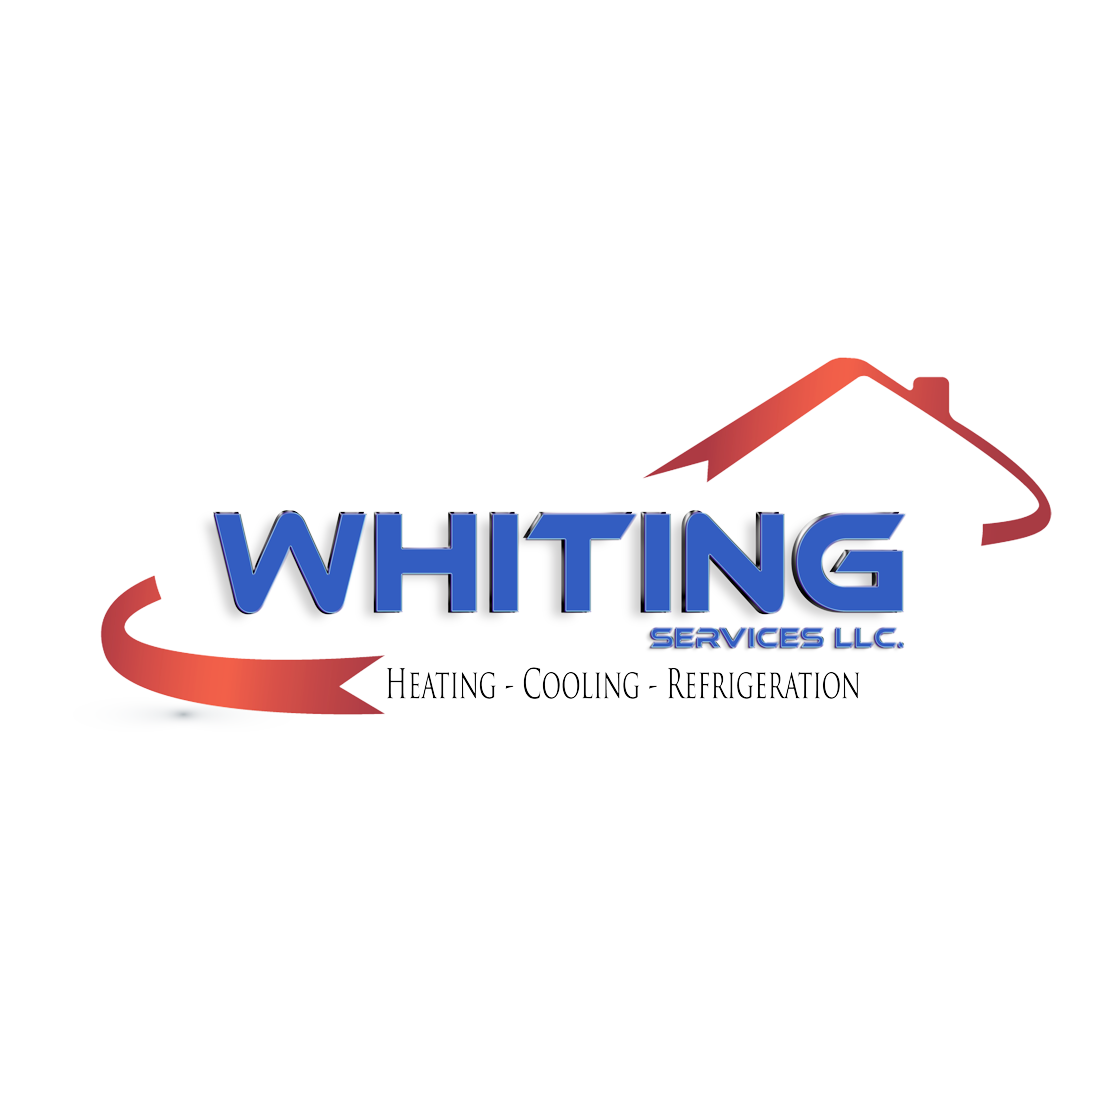 Whiting Services LLC